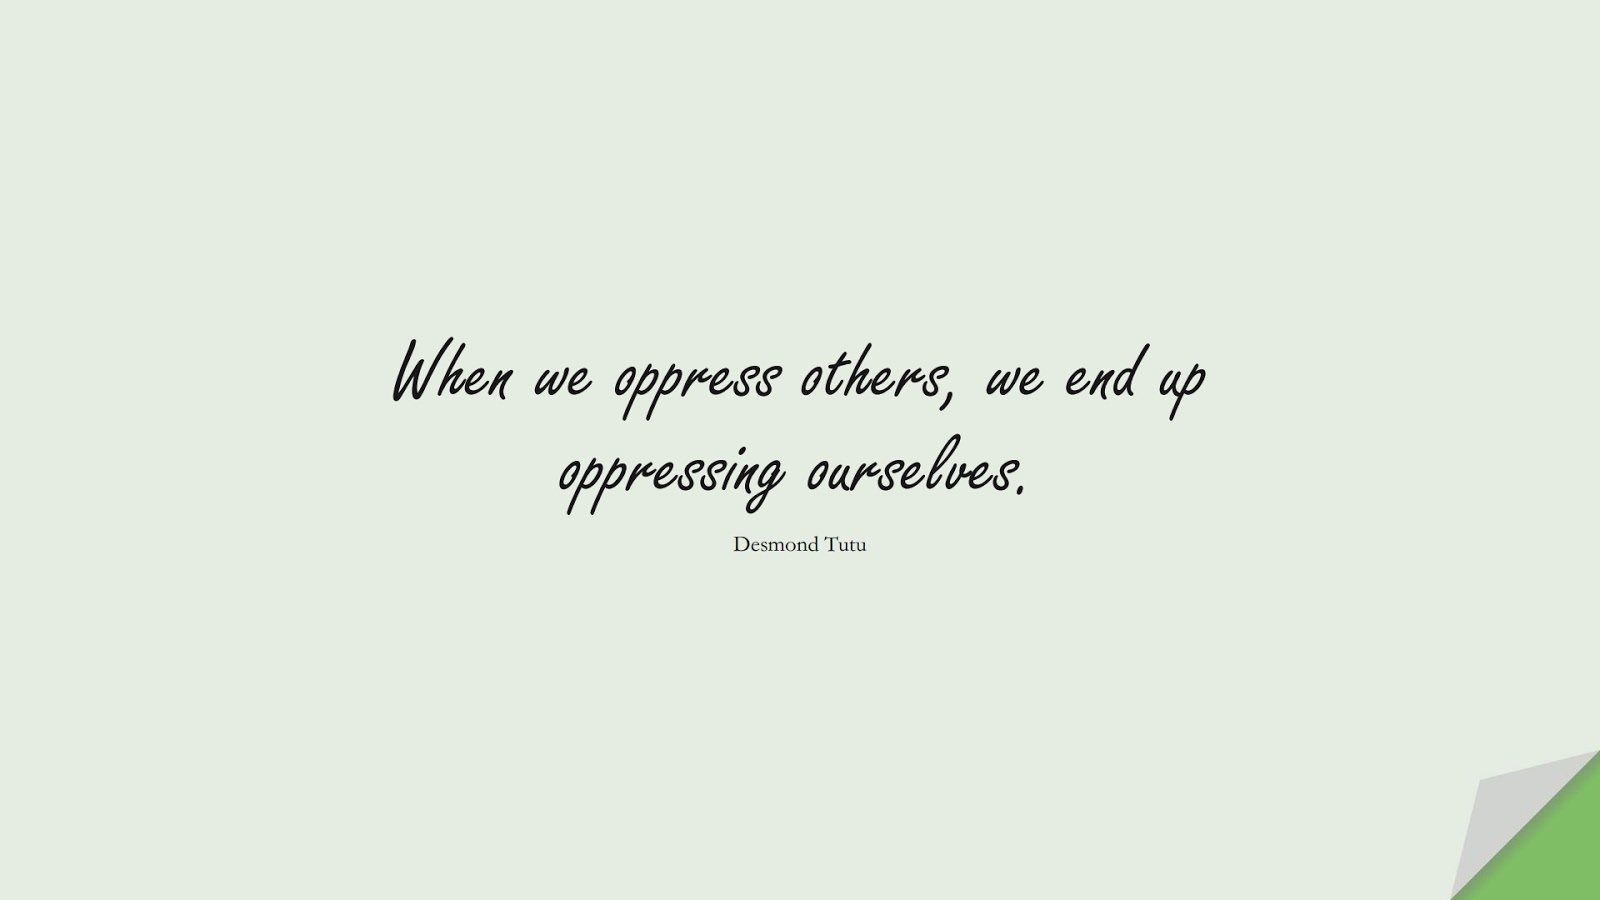 When we oppress others, we end up oppressing ourselves. (Desmond Tutu);  #HumanityQuotes